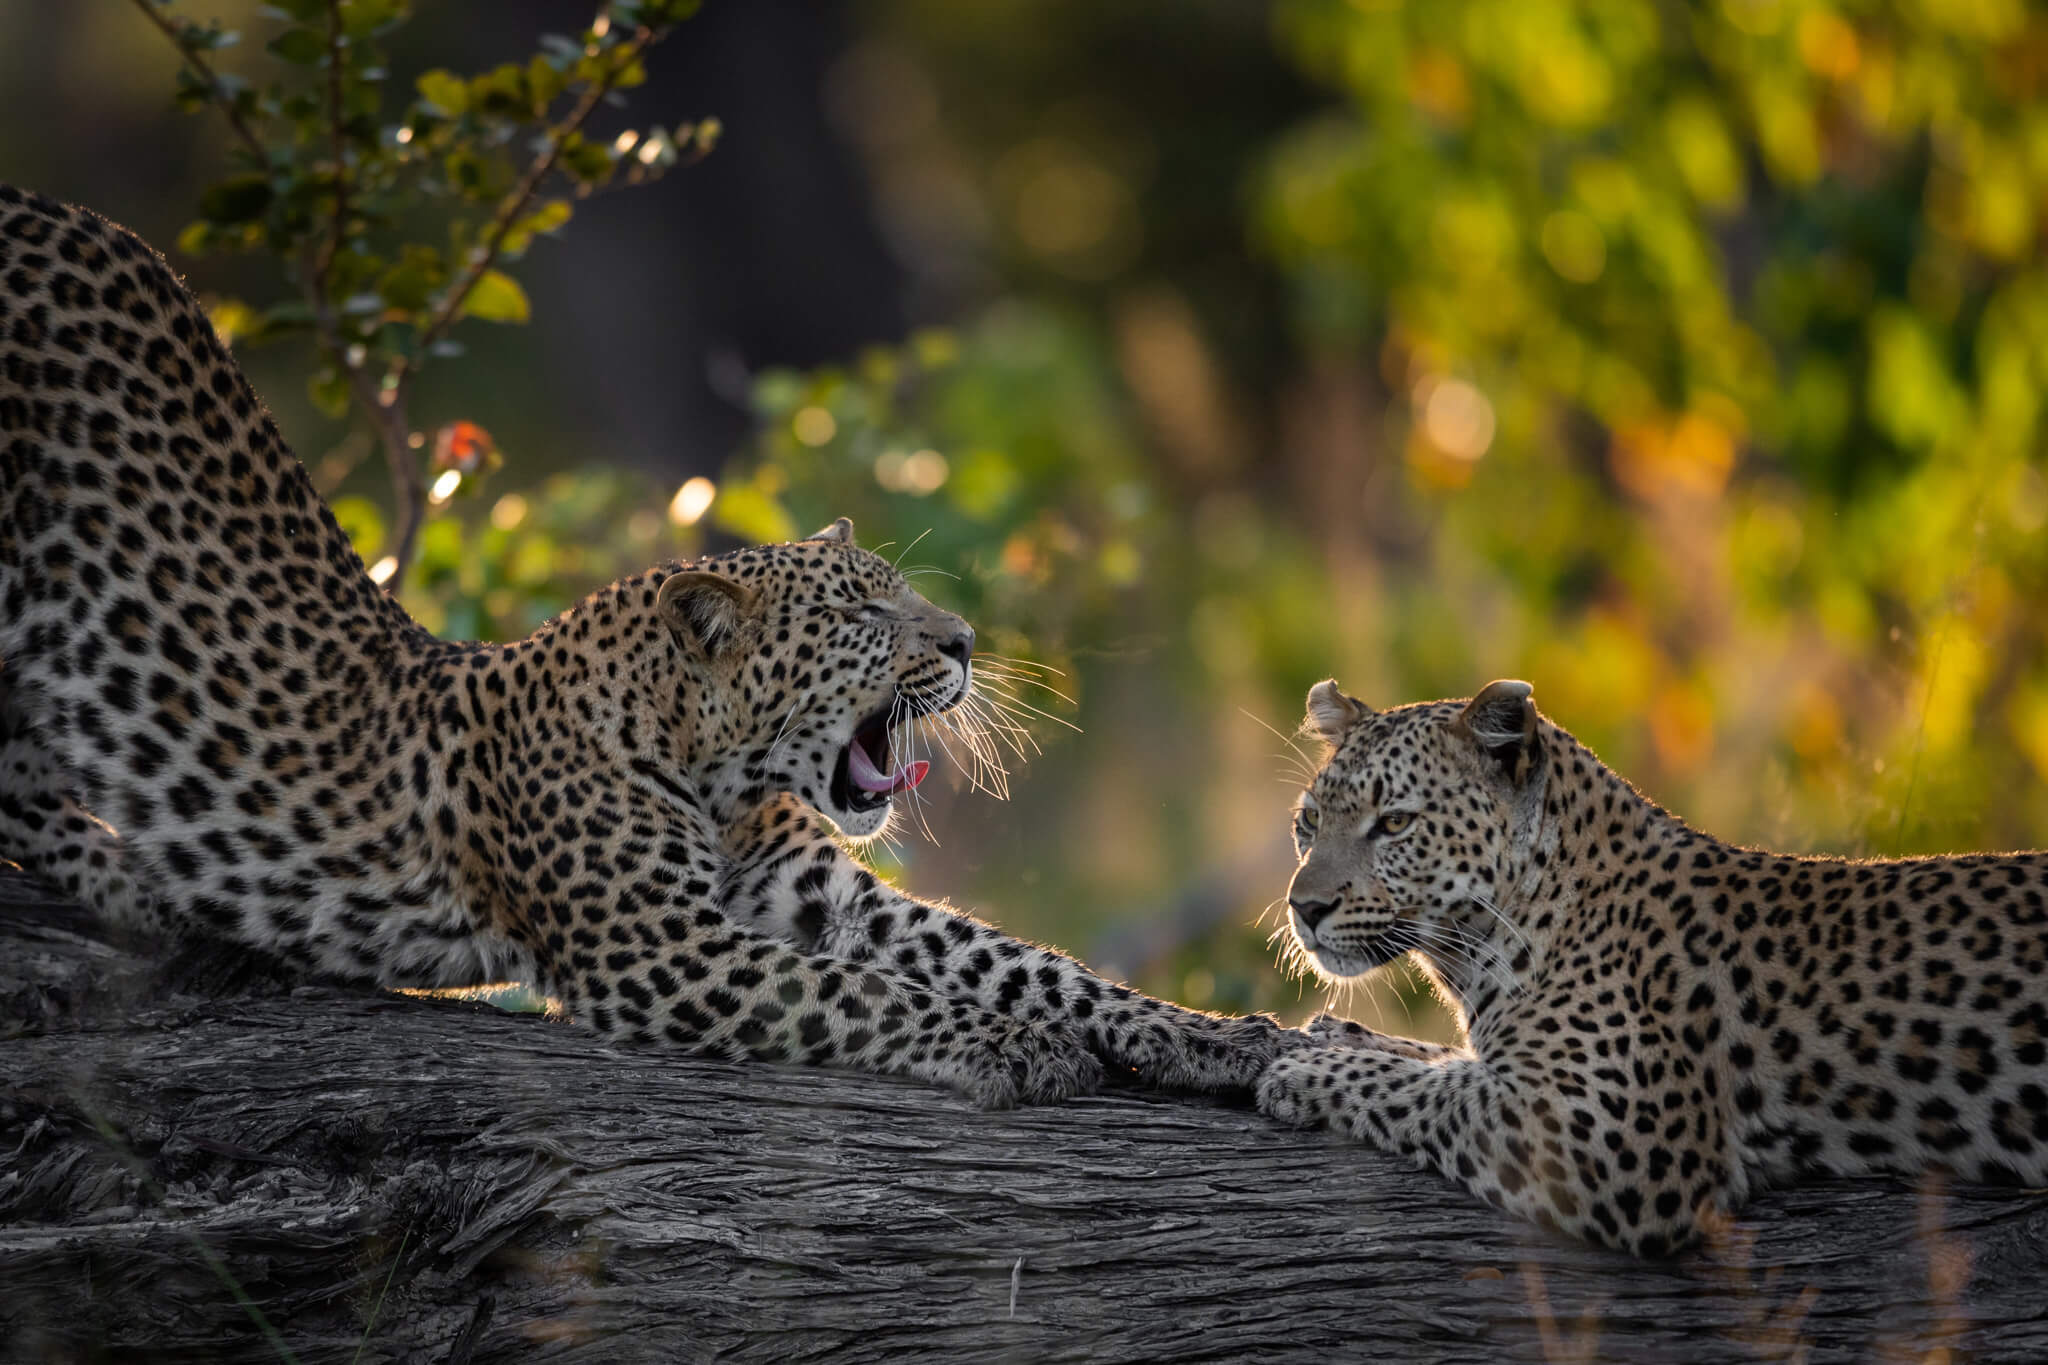 23Tuludi - Leopard sightings.jpg